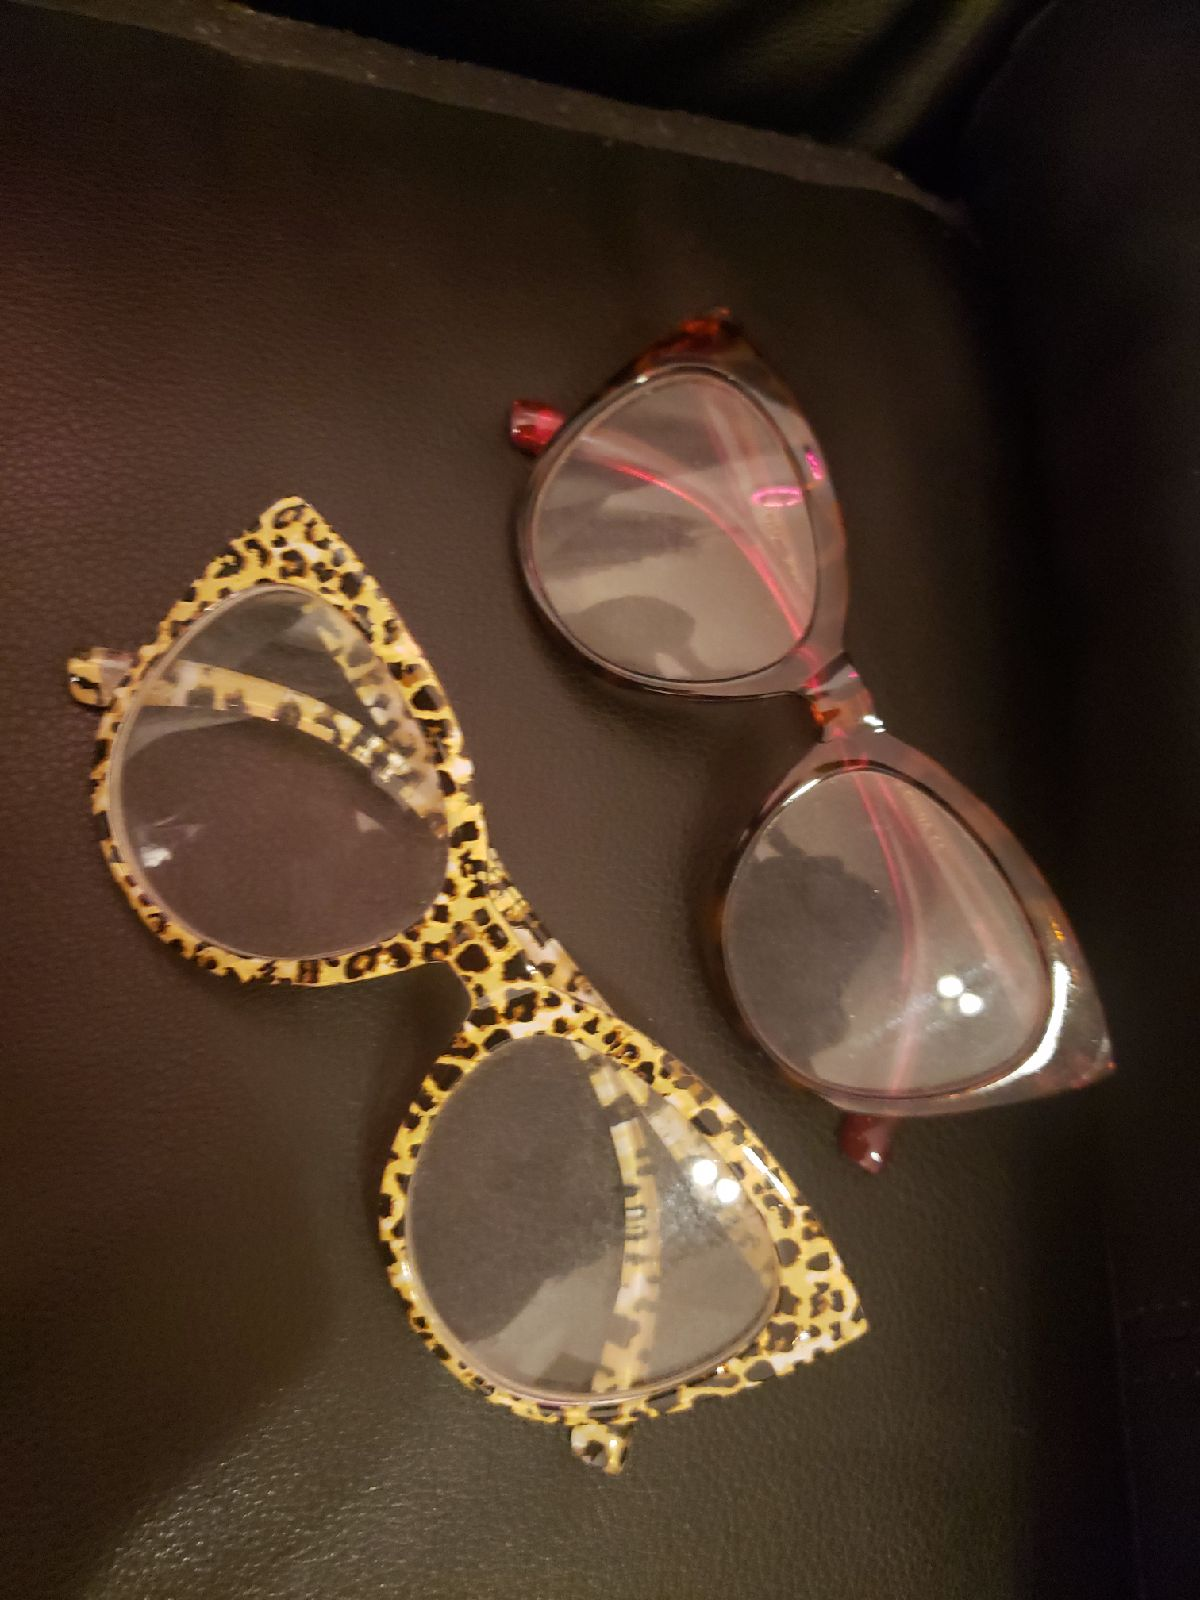 Betsey Johnson glasses